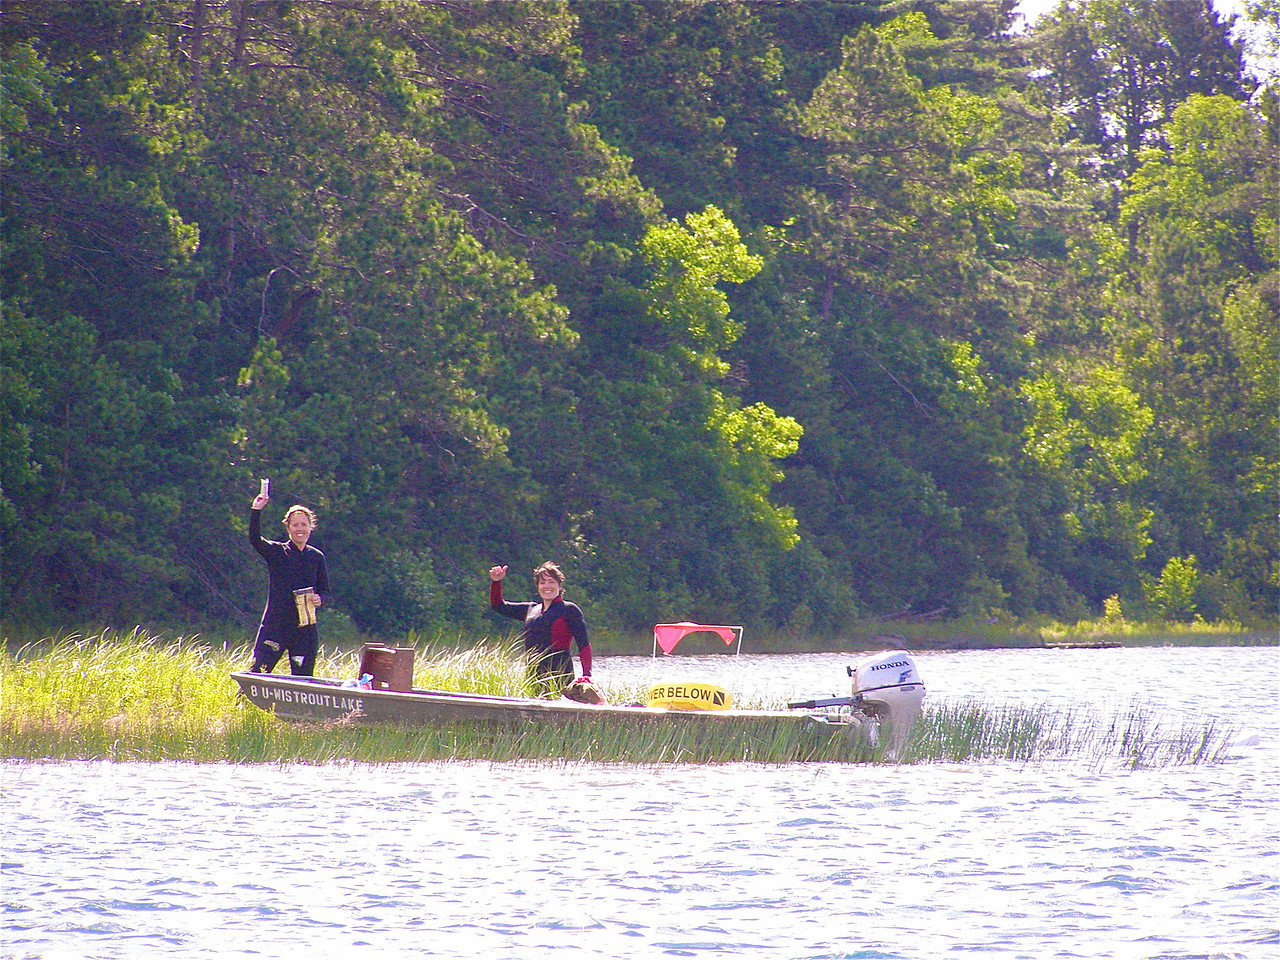 Back from their dive, Gretchen and Ali are happy to report that Sparkling Lake is making a comeback.